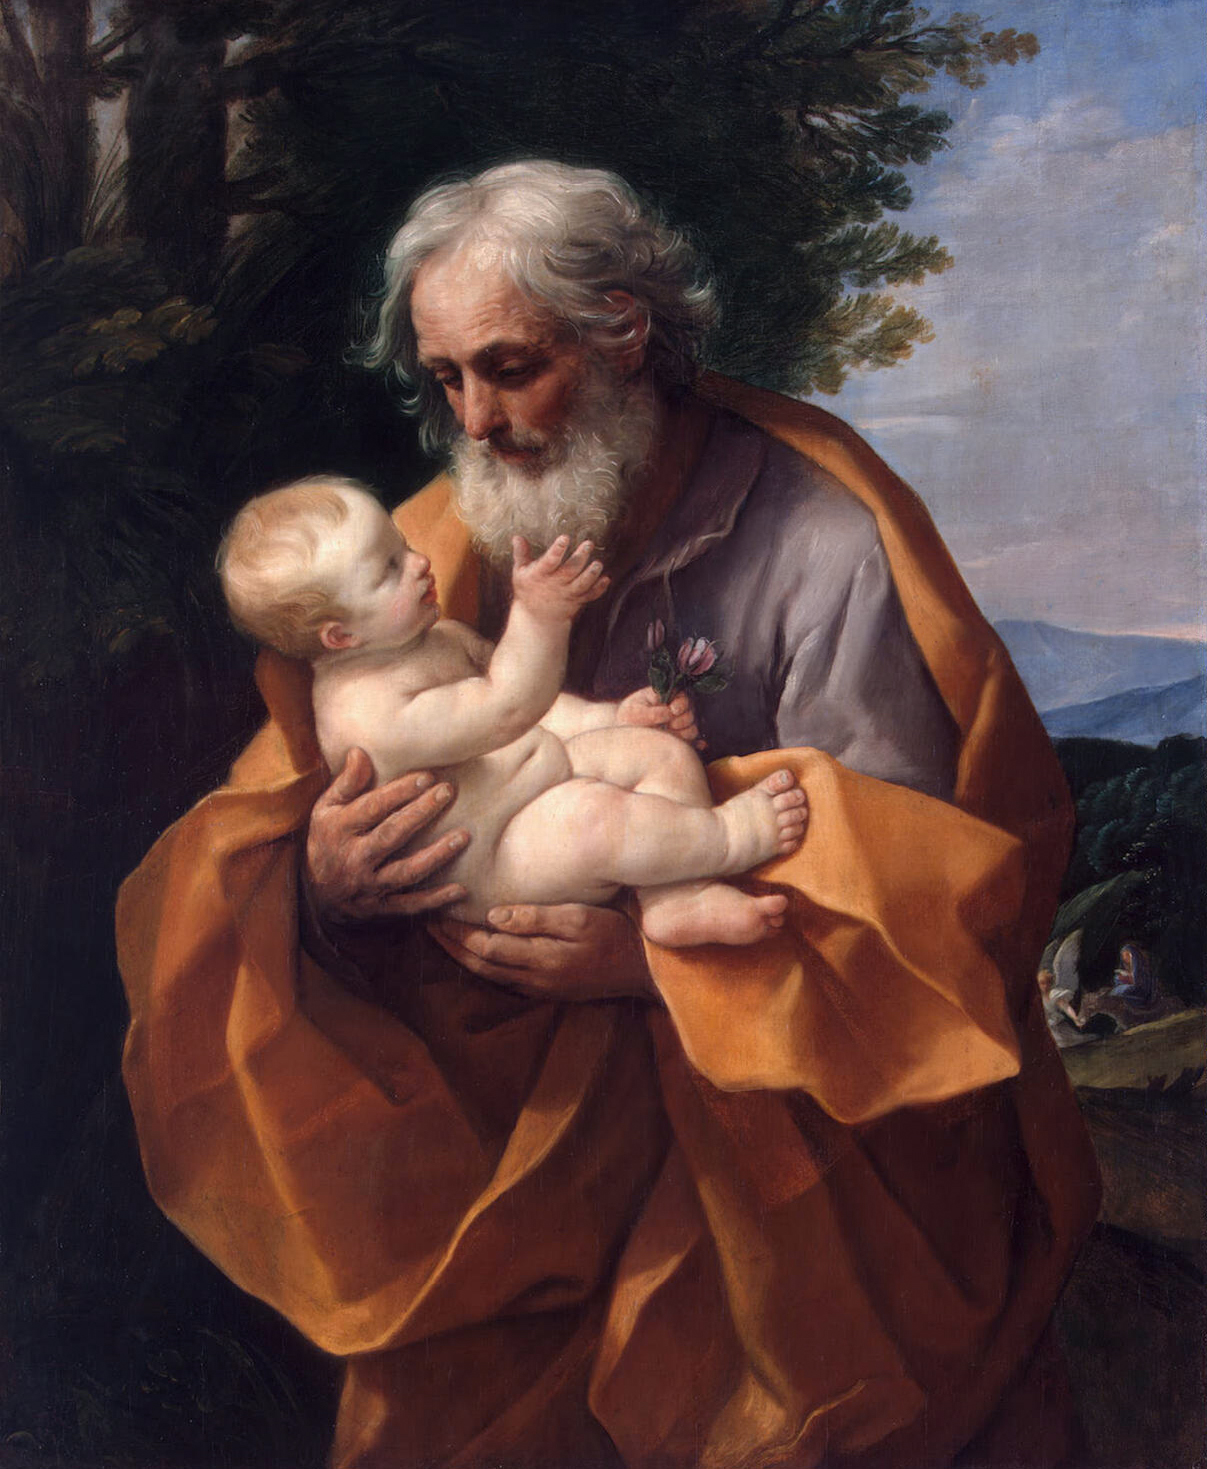 La nascita di Gesù vista con gli occhi del 2016 Saint_Joseph_with_the_Infant_Jesus_by_Guido_Reni%2C_c_1635